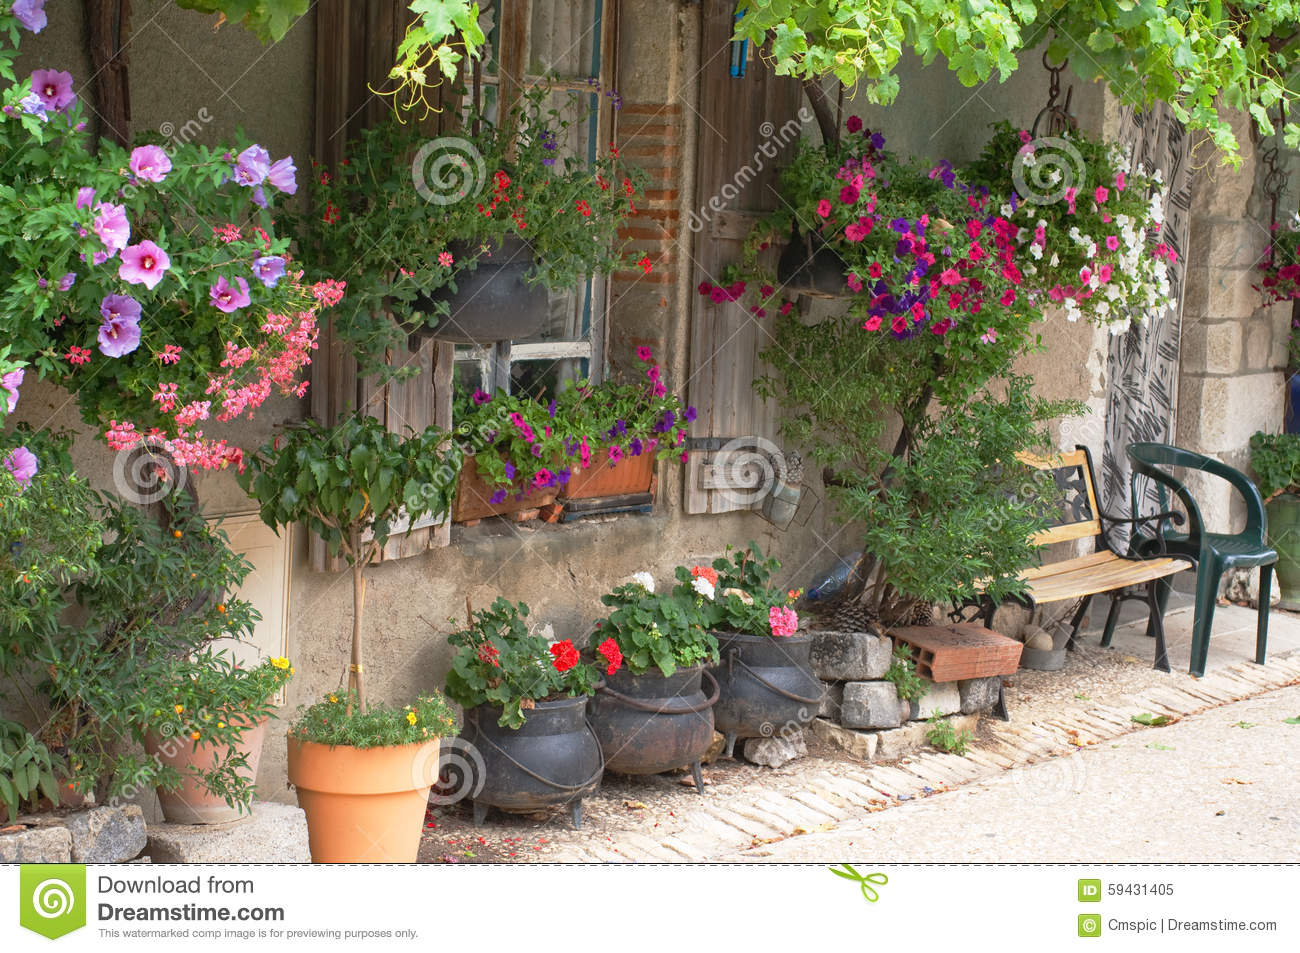 Dreamstime.com & Hanging baskets stock image. Image of house french bench ...